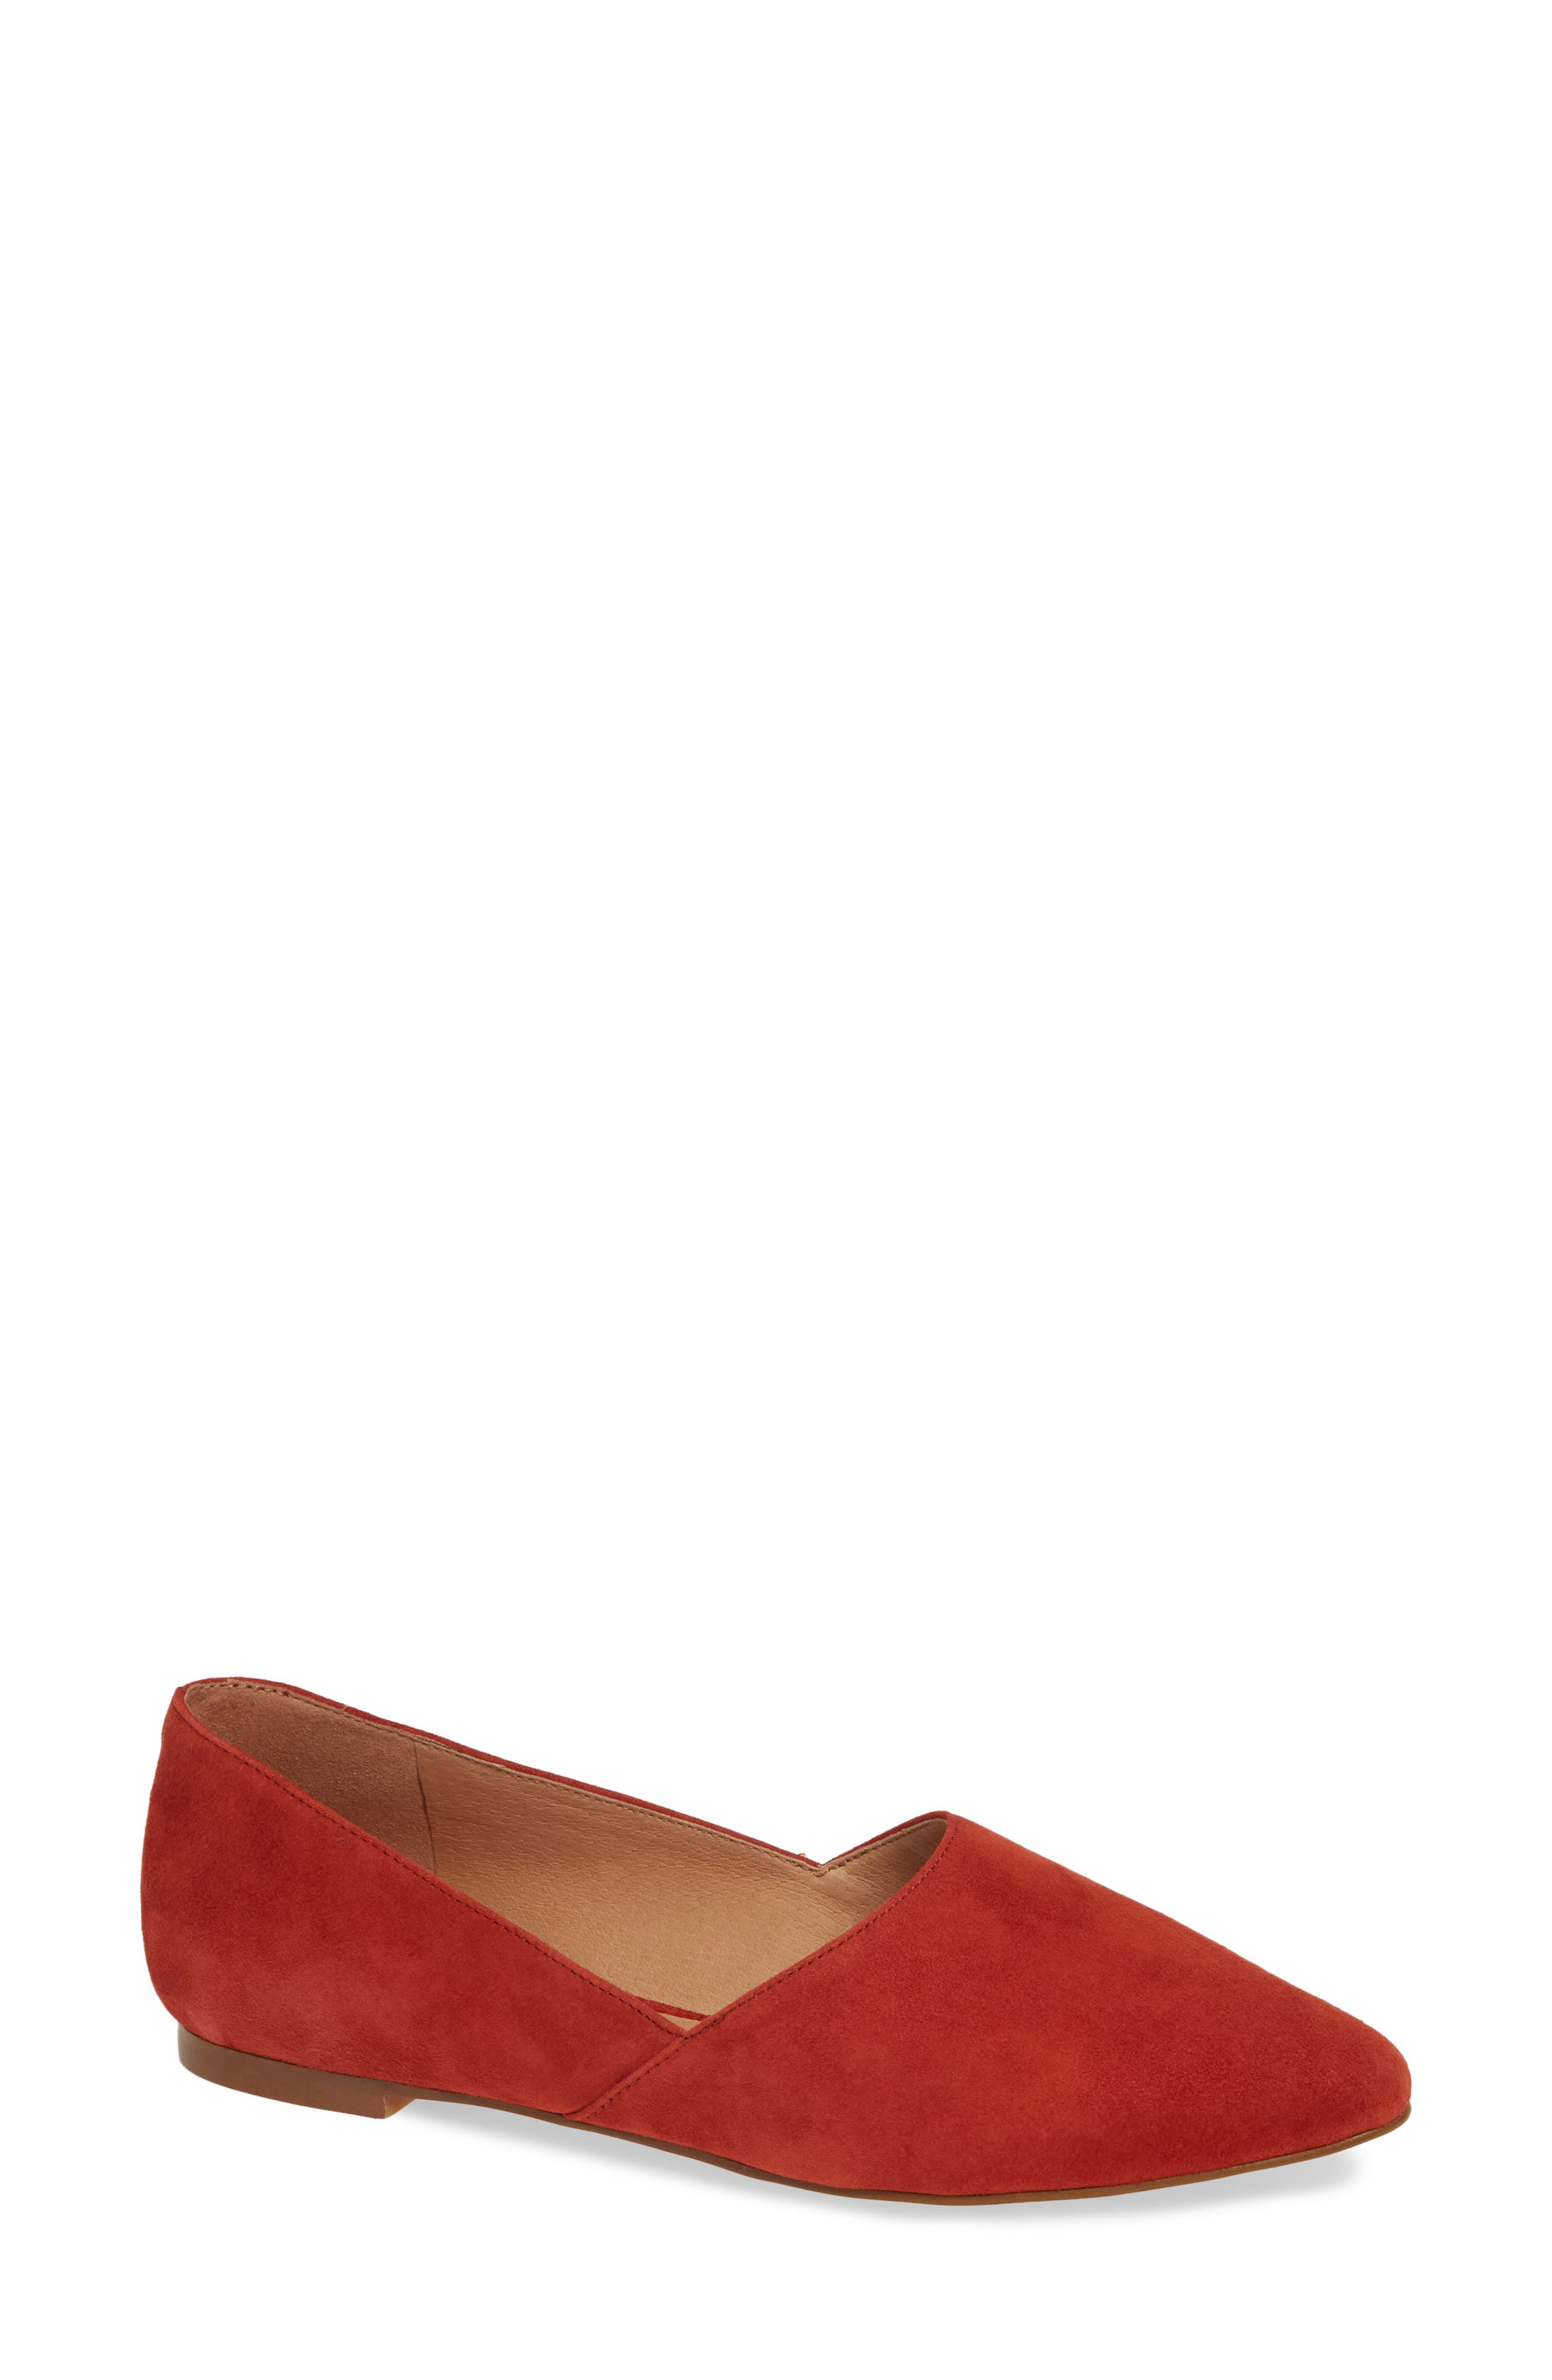 Lizbeth Pointy Toe Flat,                         Main,                         color, DARK CINNABAR